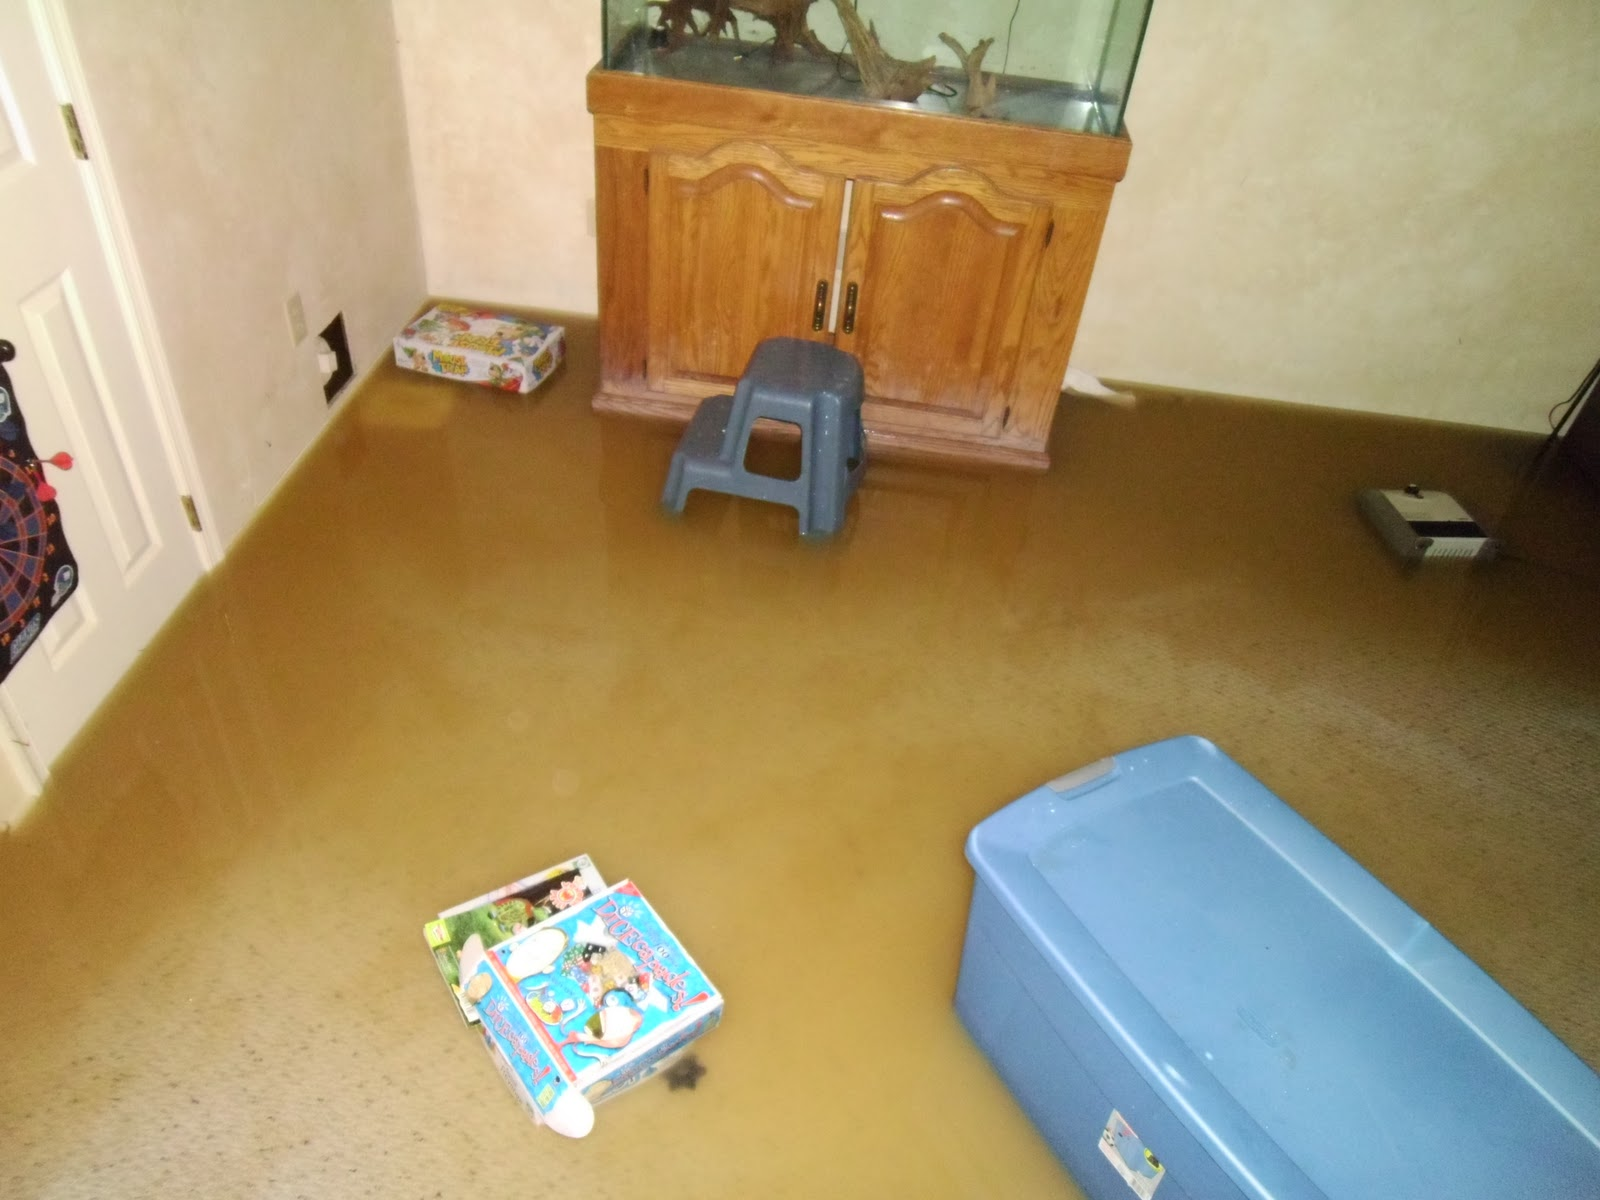 in september and flooded my basement where i did all my hobby work